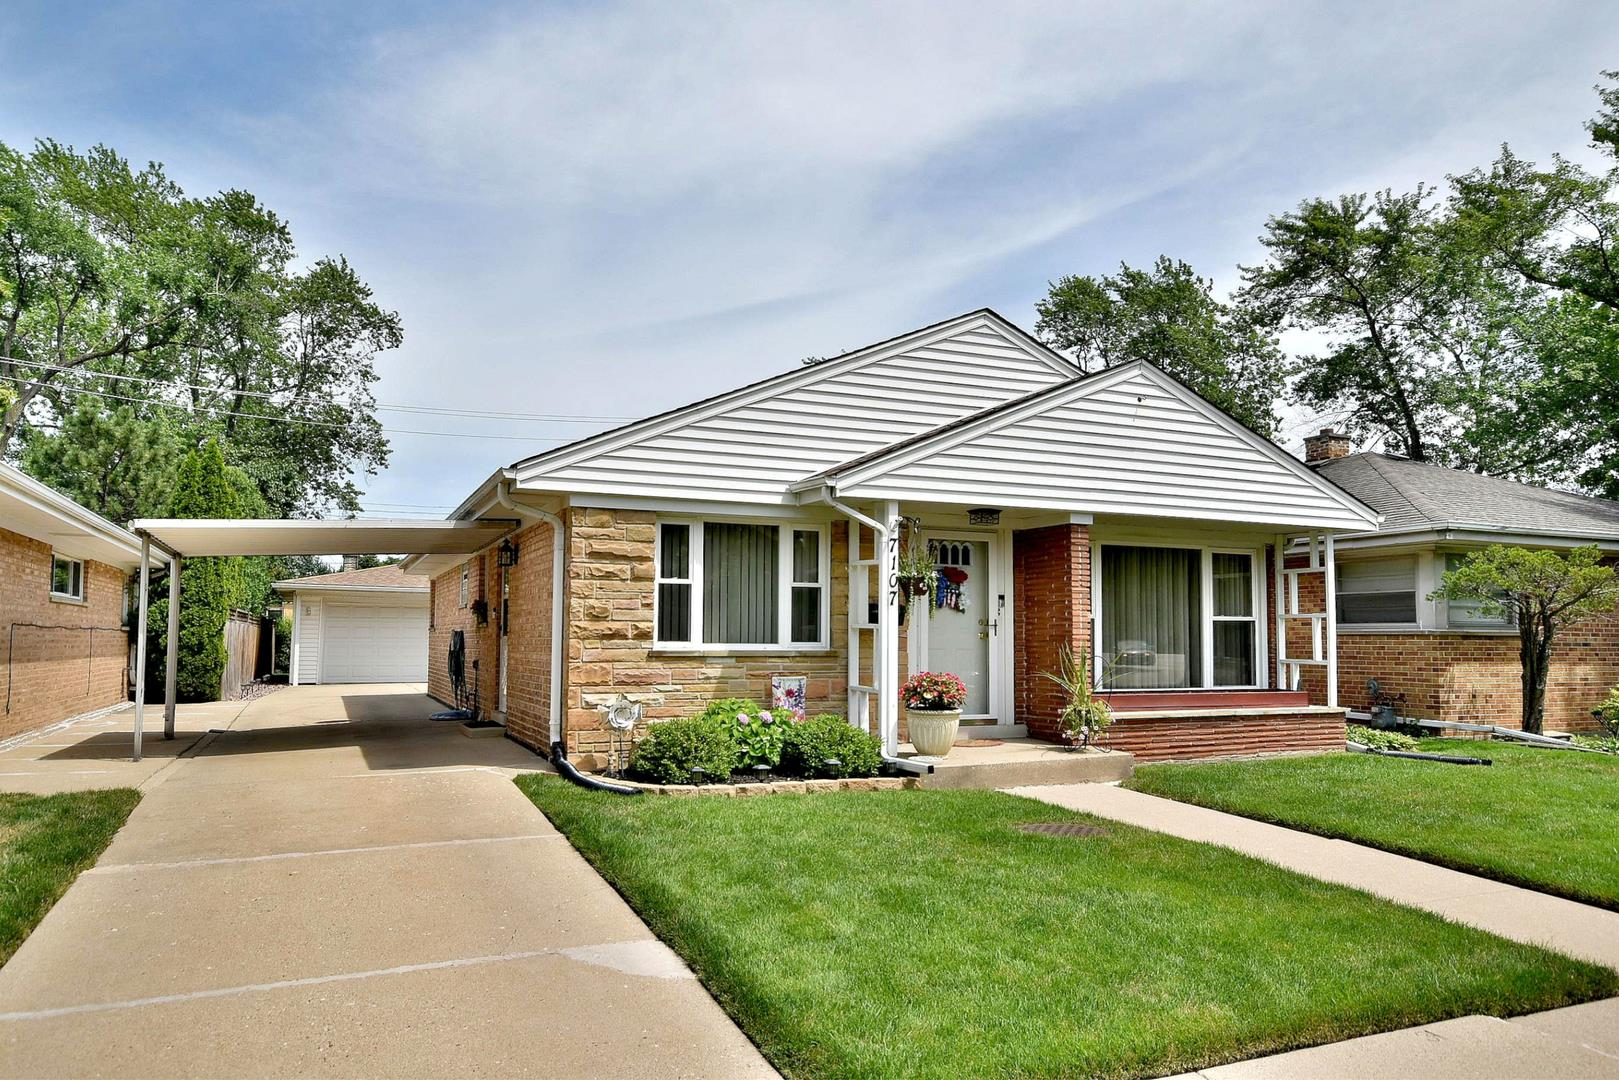 7107 N Nagle Avenue, Chicago, IL 60646 - #: 10783339